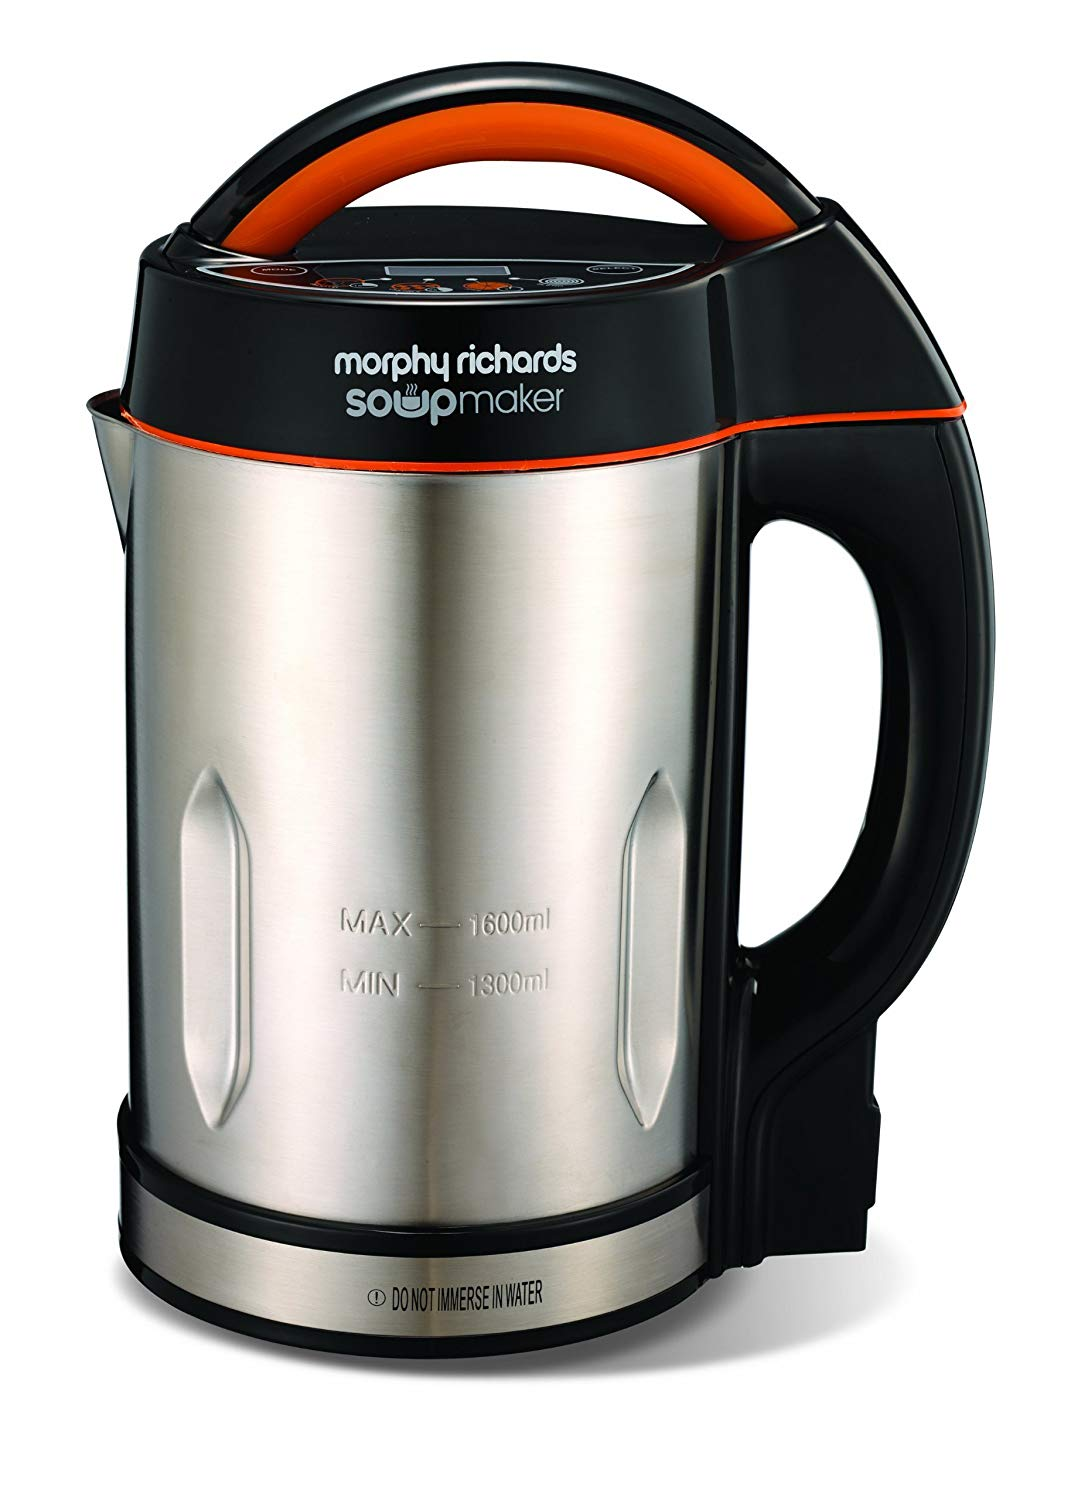 Morphy Richards Soupmaker Stainless Steel Soup Maker £42.00 + FREE Delivery